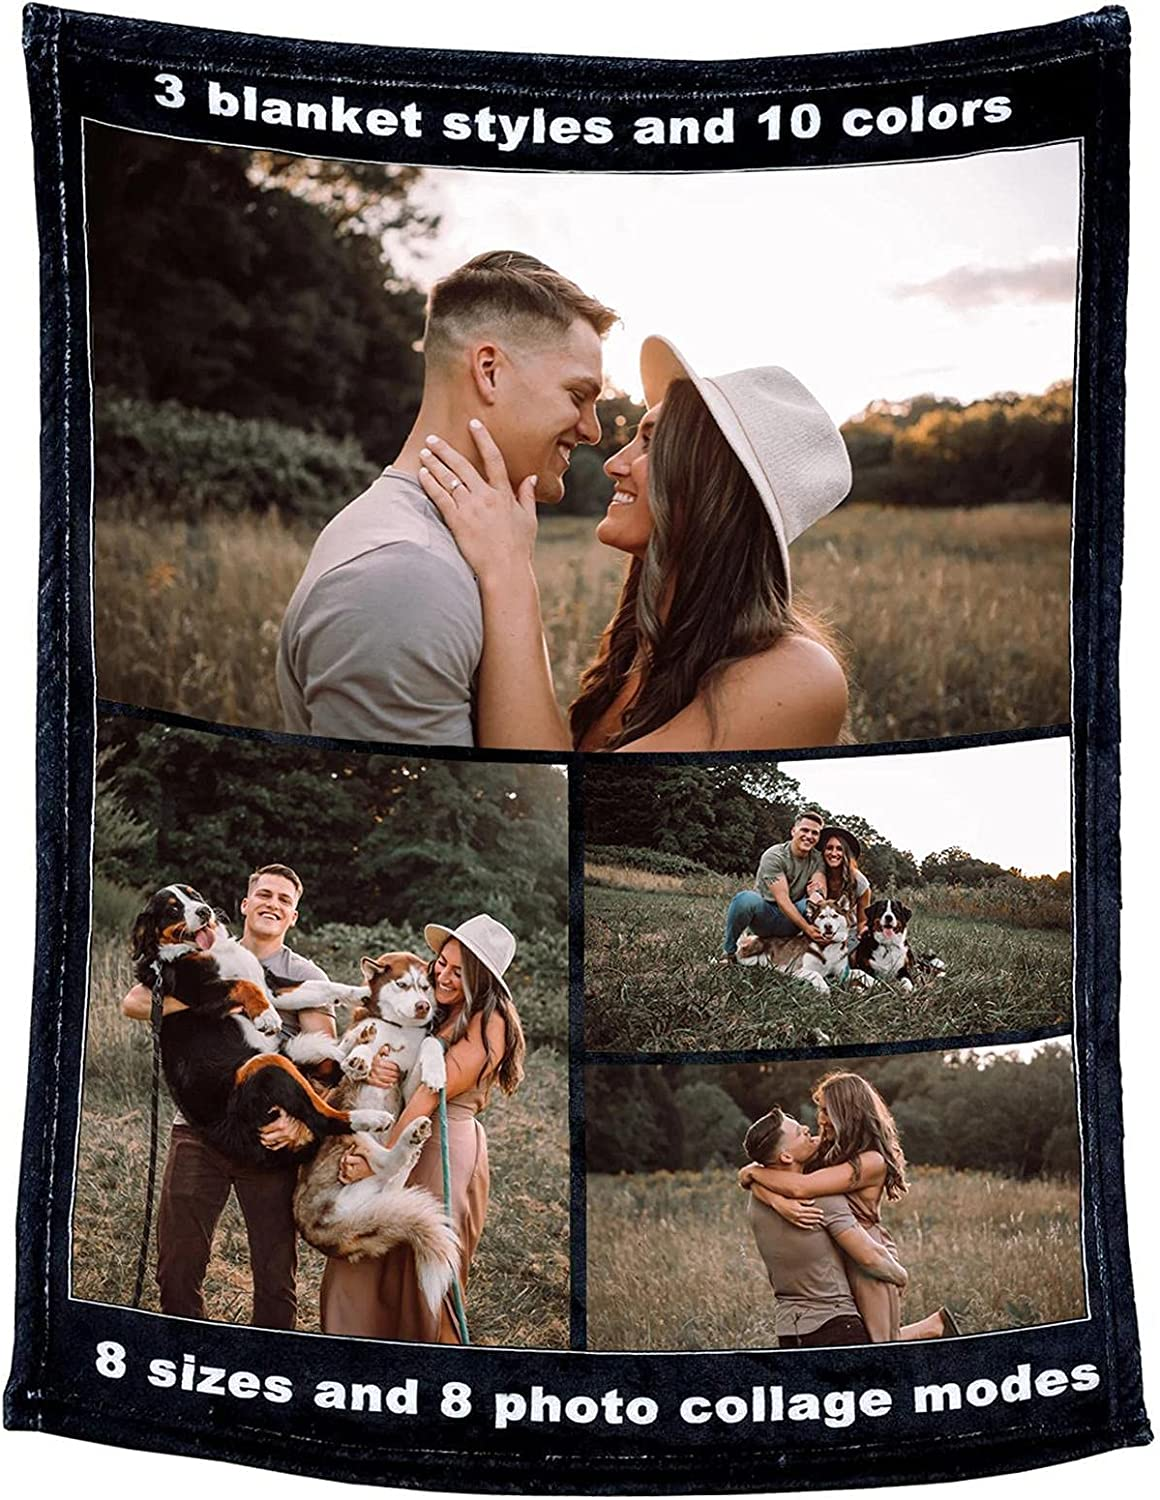 Customized Blanket Inexpensive Very popular Personalized Throw Custom Blankets Soft Super